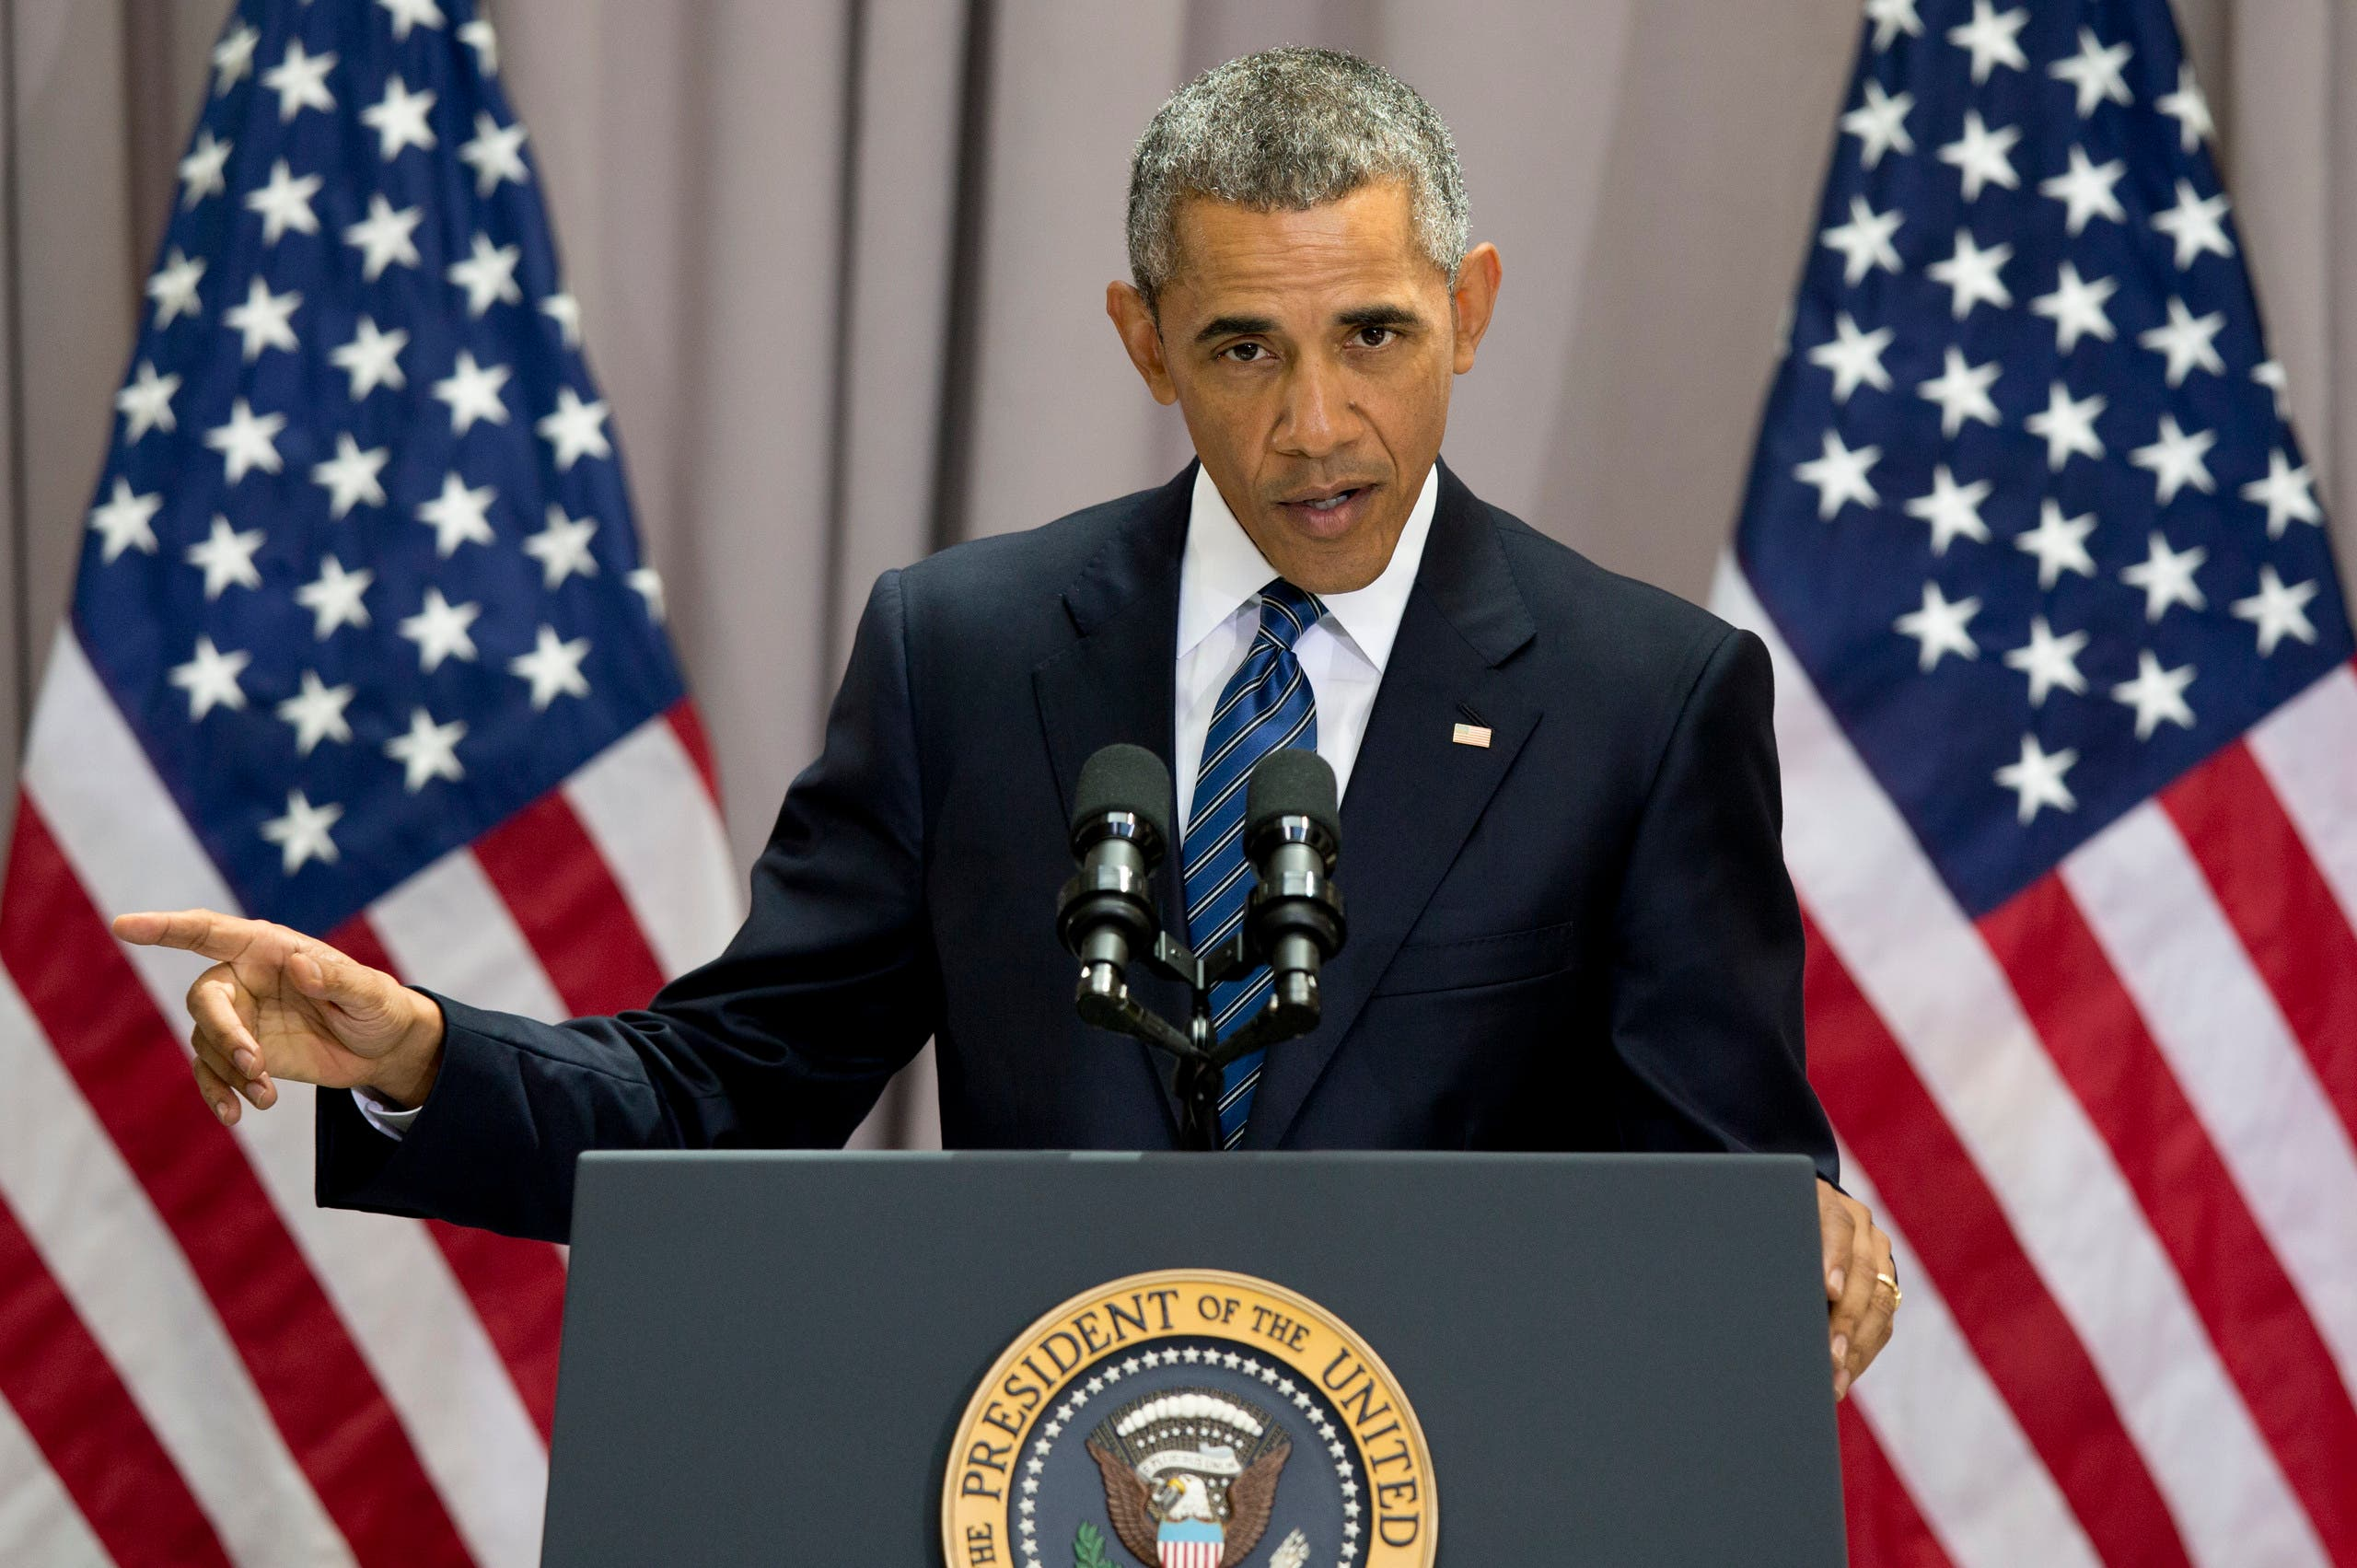 President Barack Obama speaks about the nuclear deal with Iran, Wednesday, Aug. 5, 2015, AP